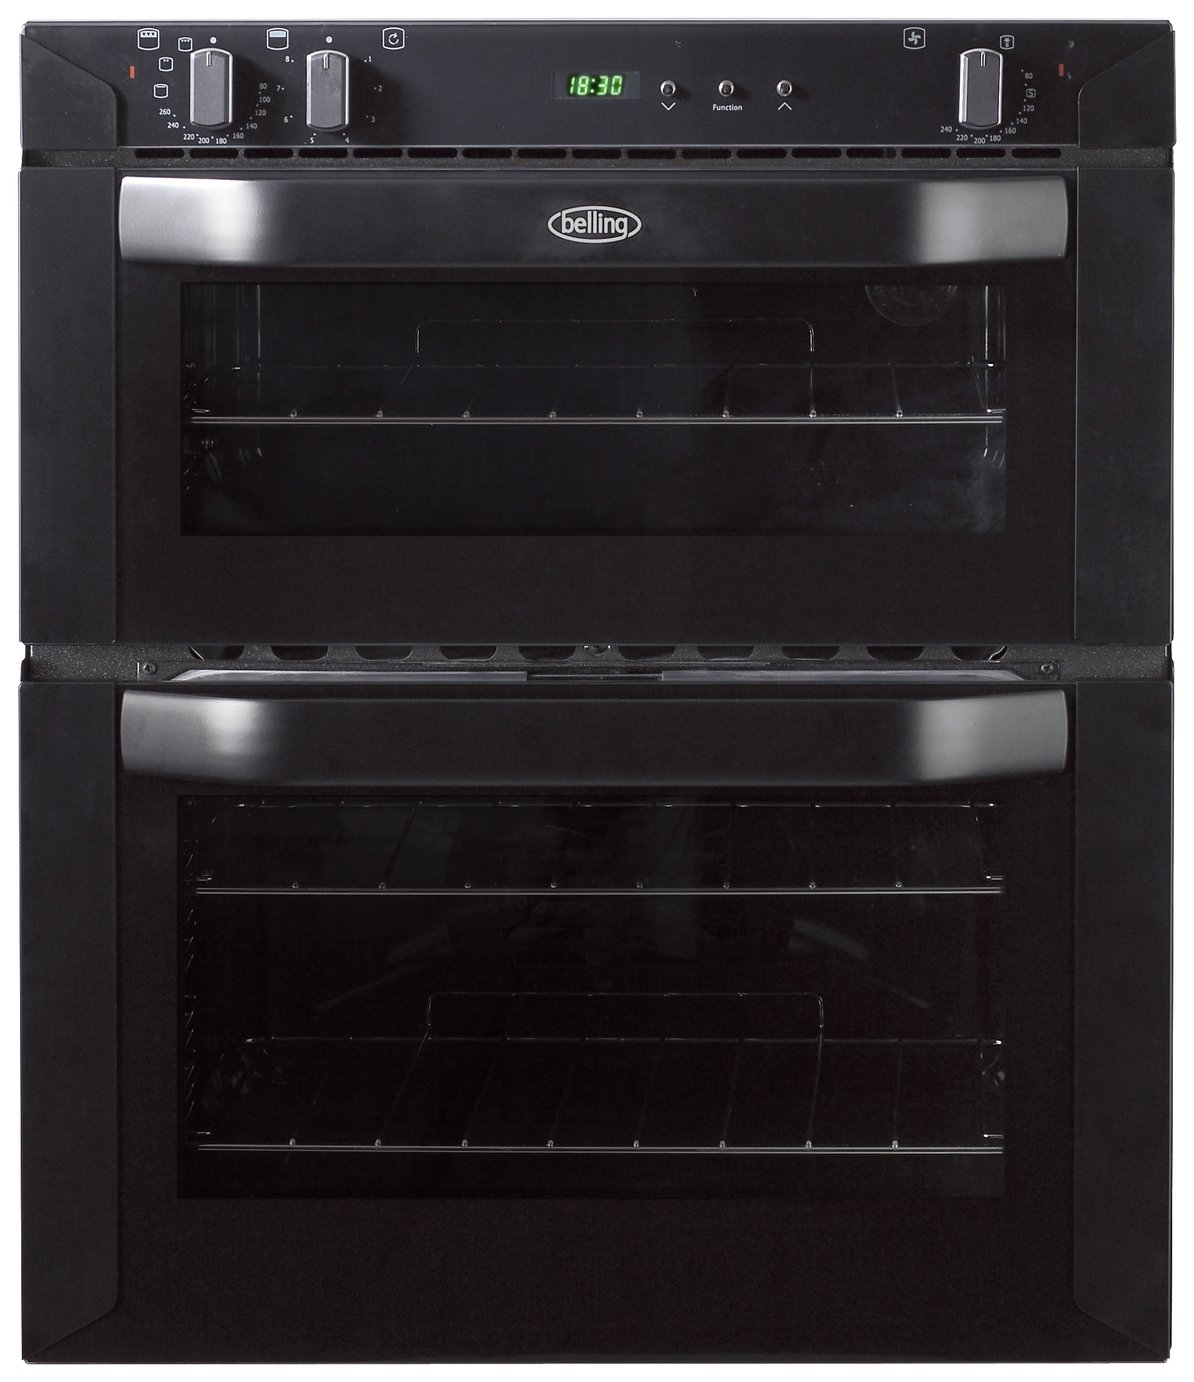 Image of Belling BI70FP Built-in Double Electric Oven - Black